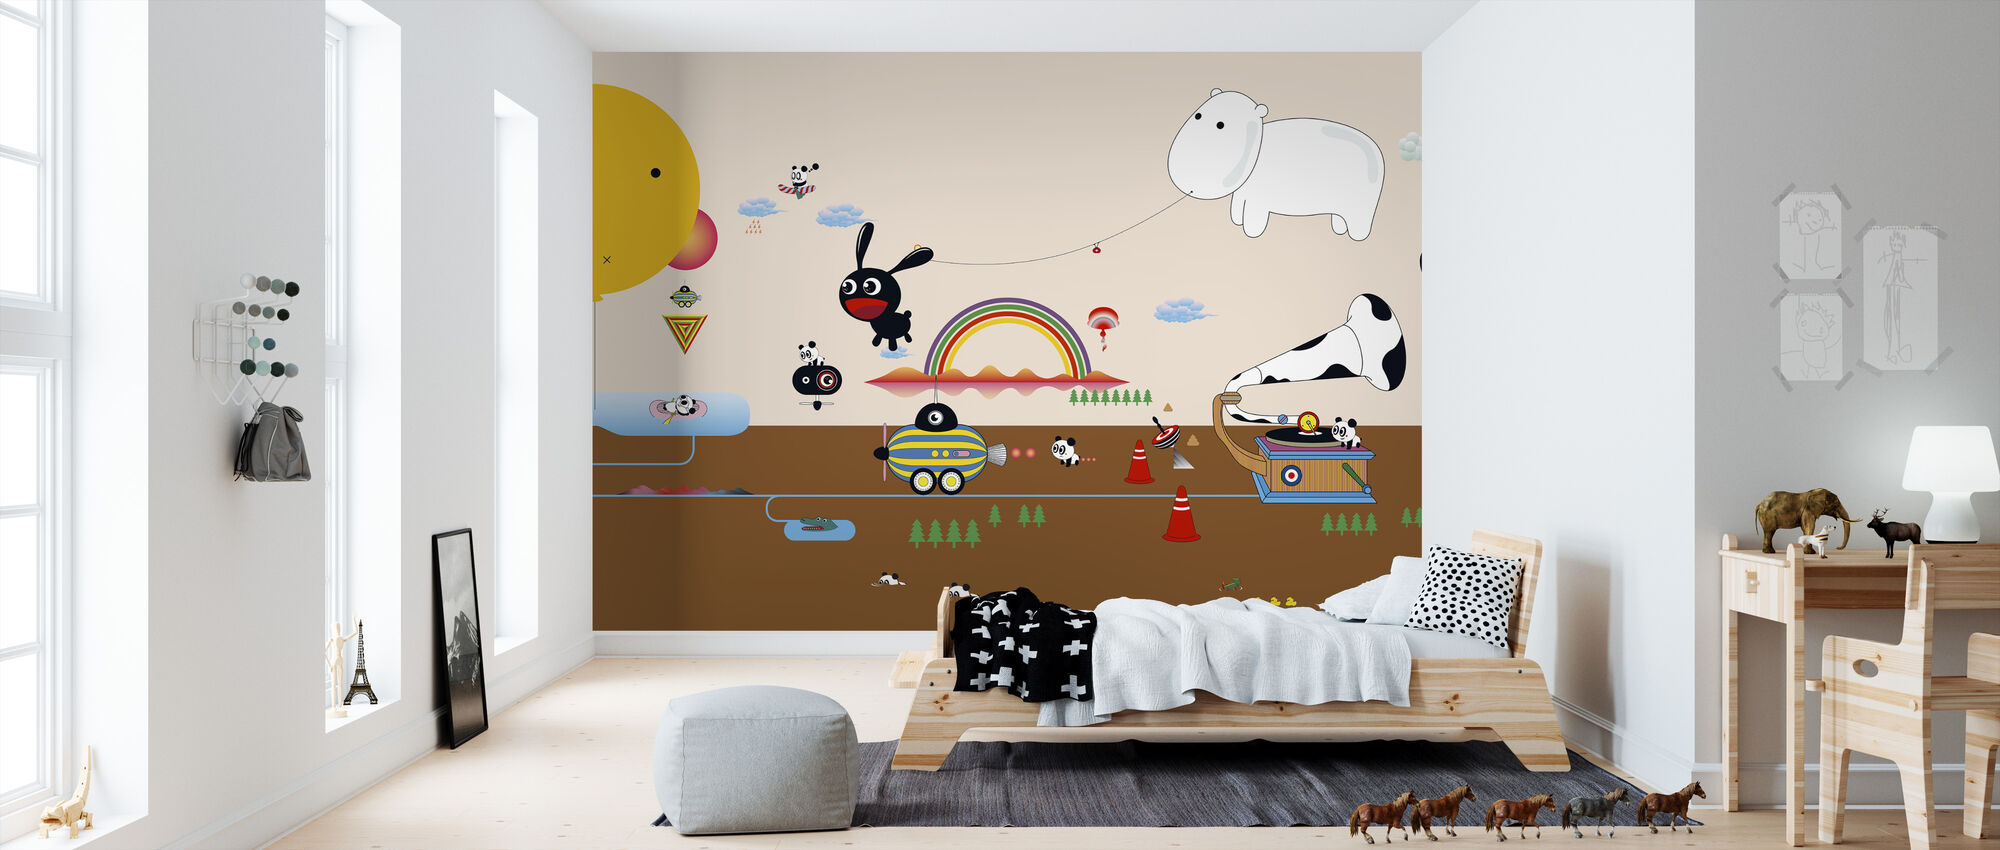 Qianqian Beachlife - Wallpaper - Kids Room